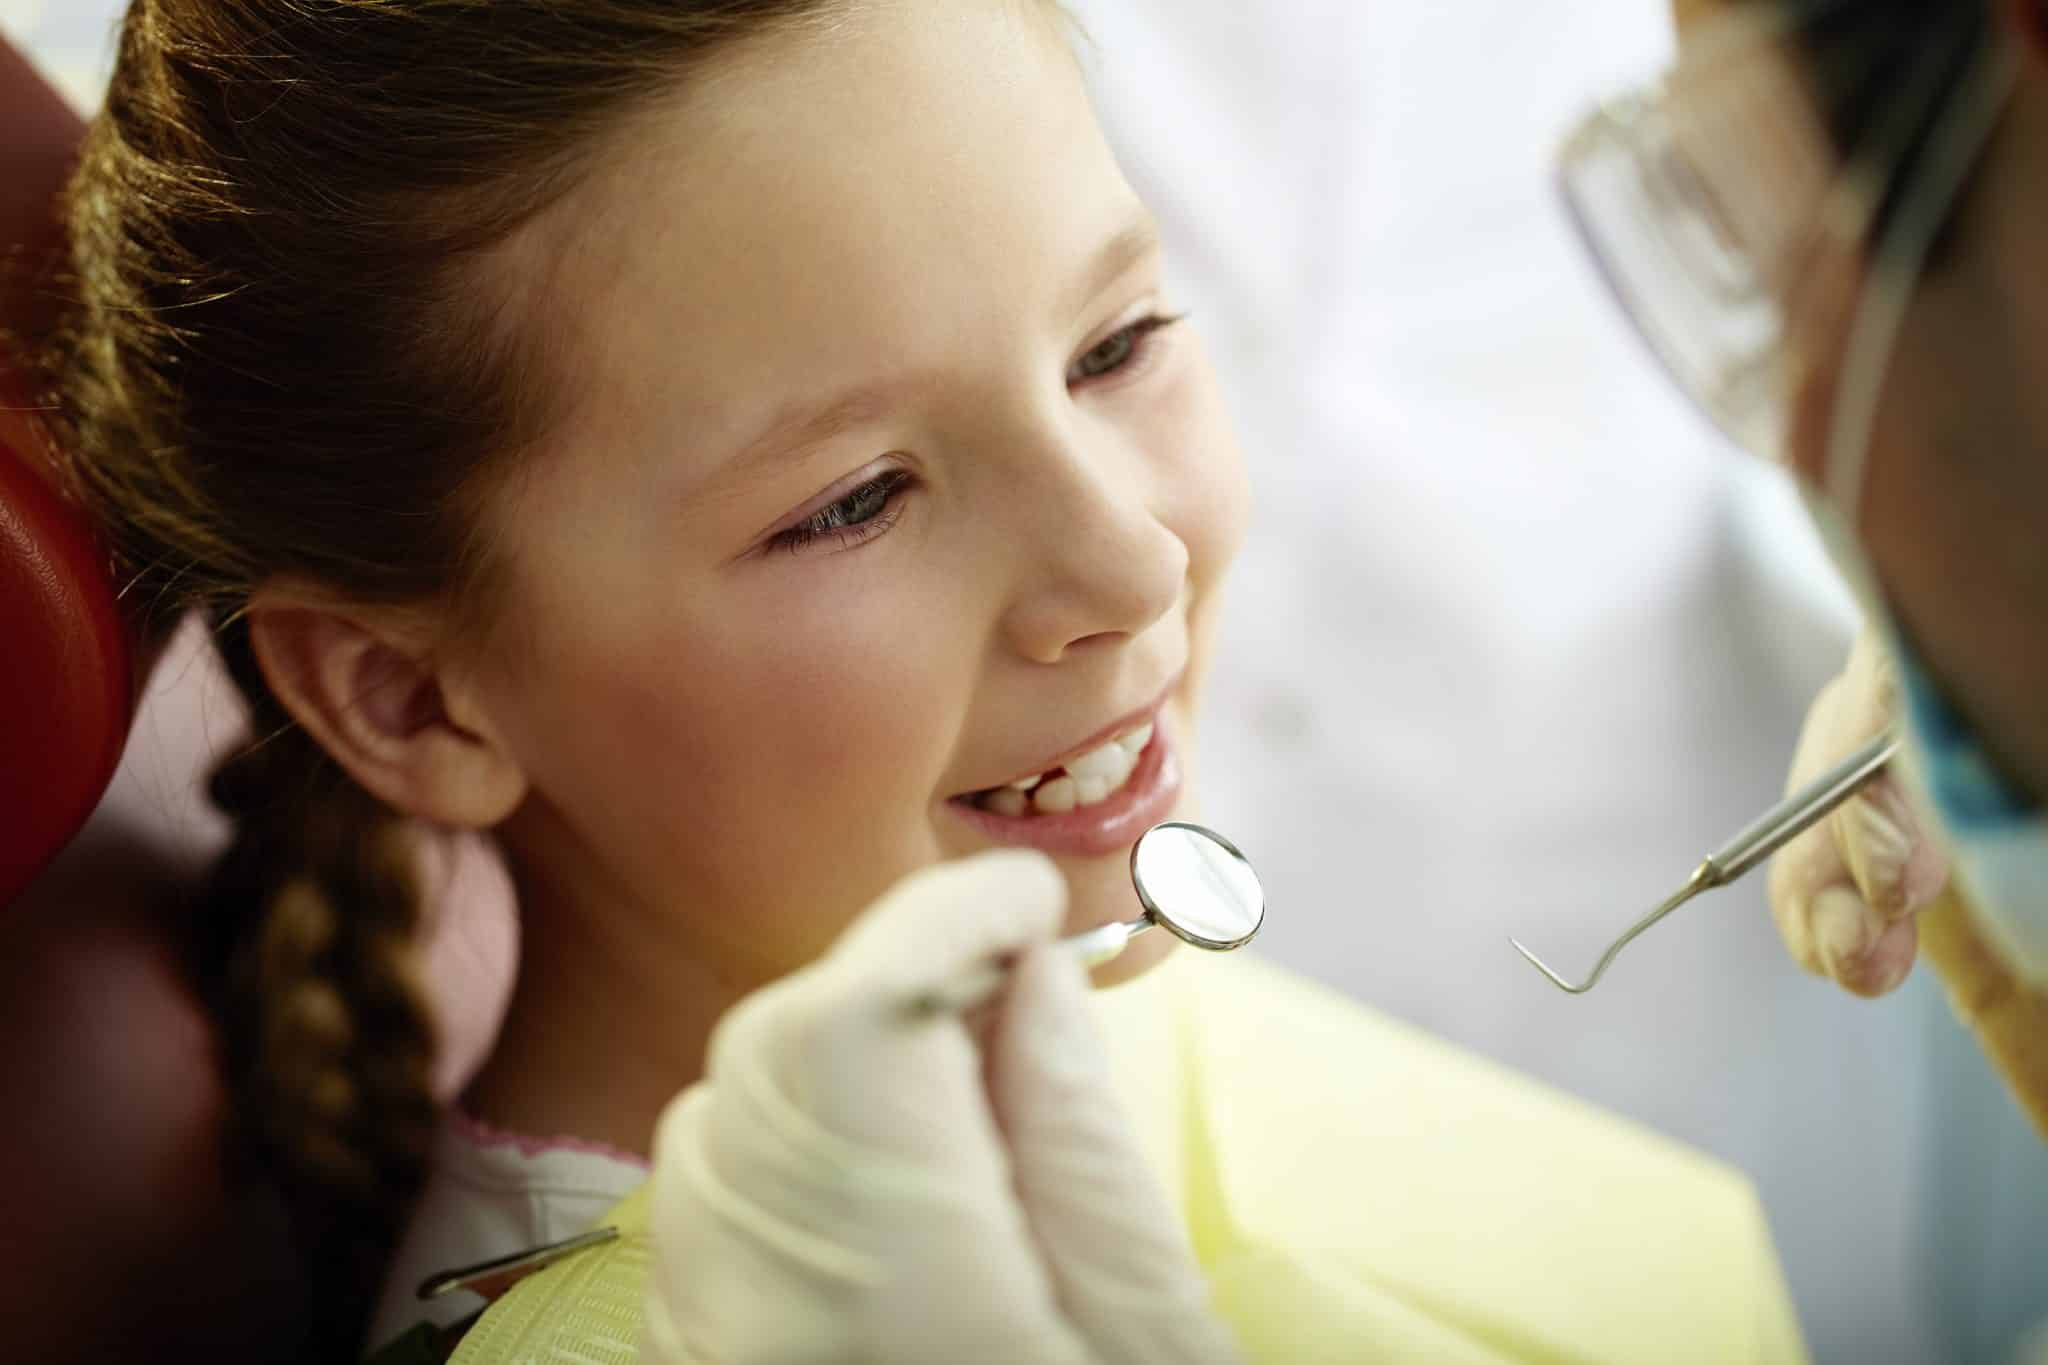 Start the school year with a smile and a visit to your kid's dentist!